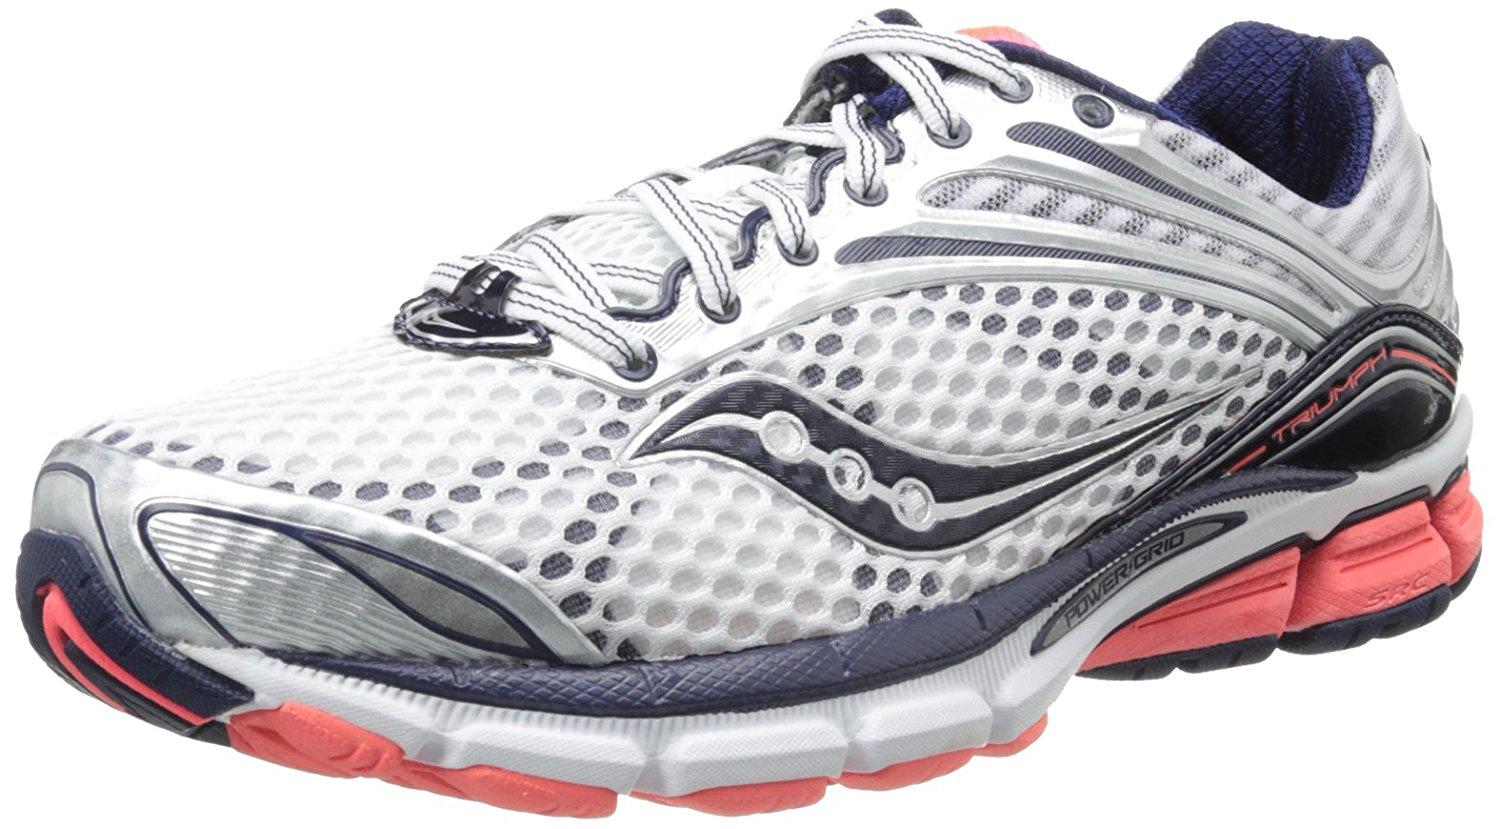 A three quarter view of the Saucony Triumph 11